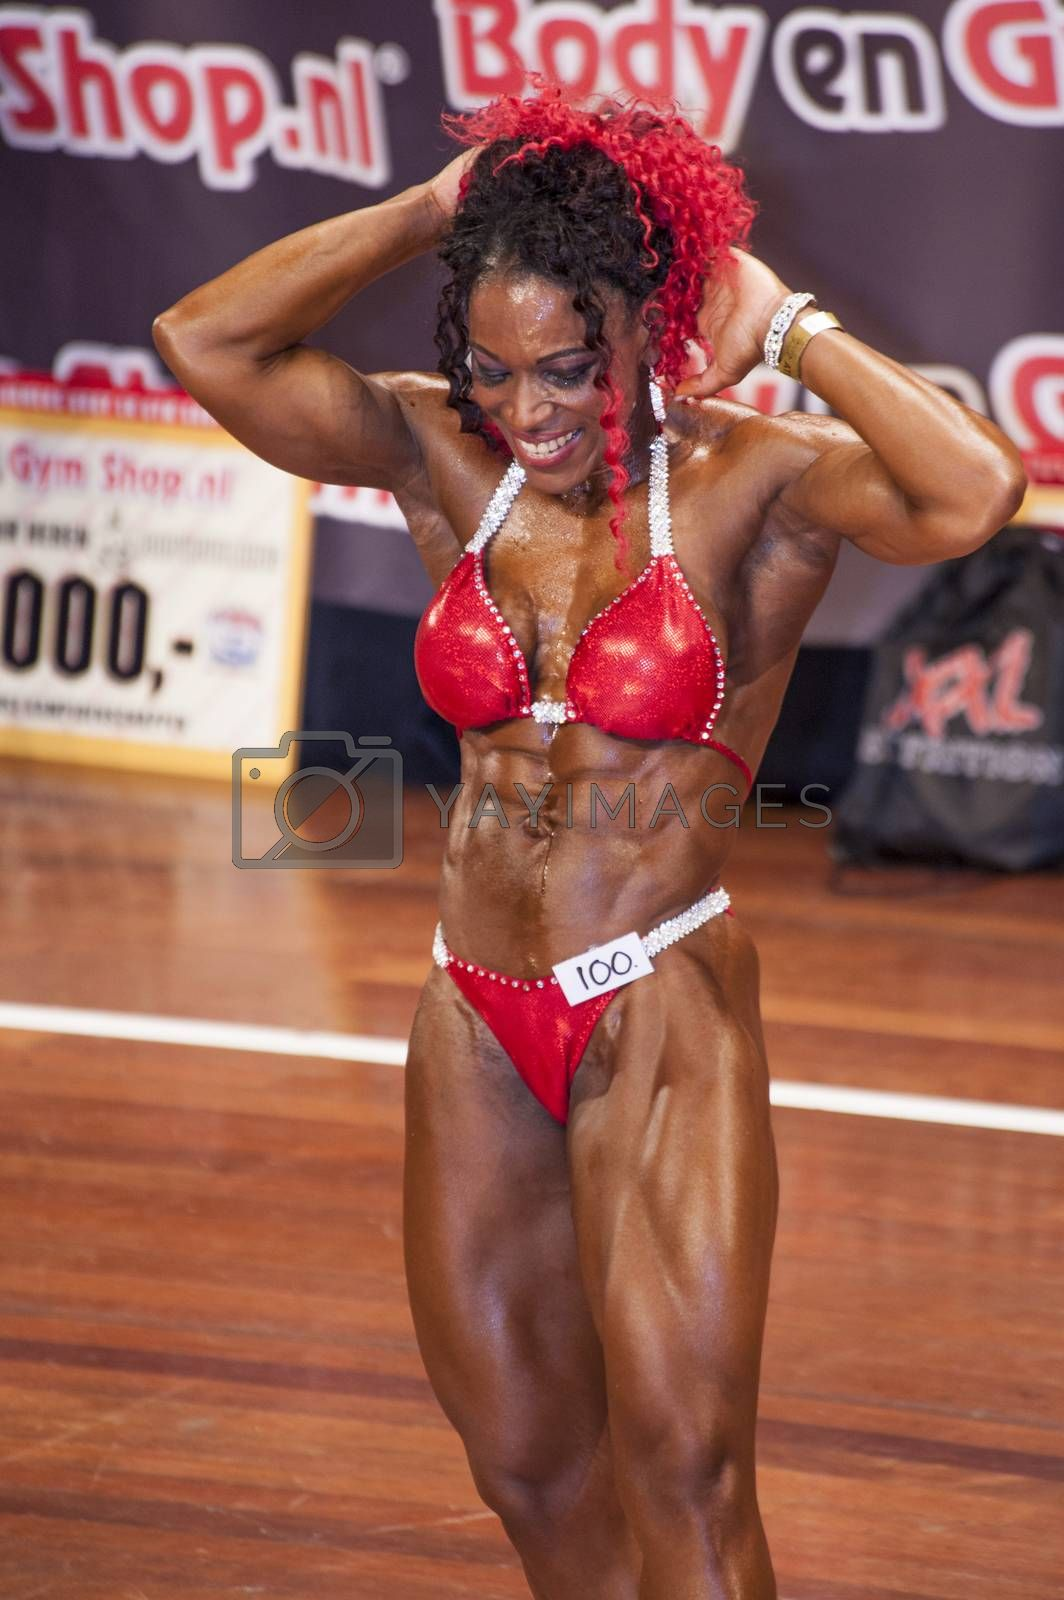 Female bodybuilder in abdominals and thighs pose and red bikini by yellowpaul